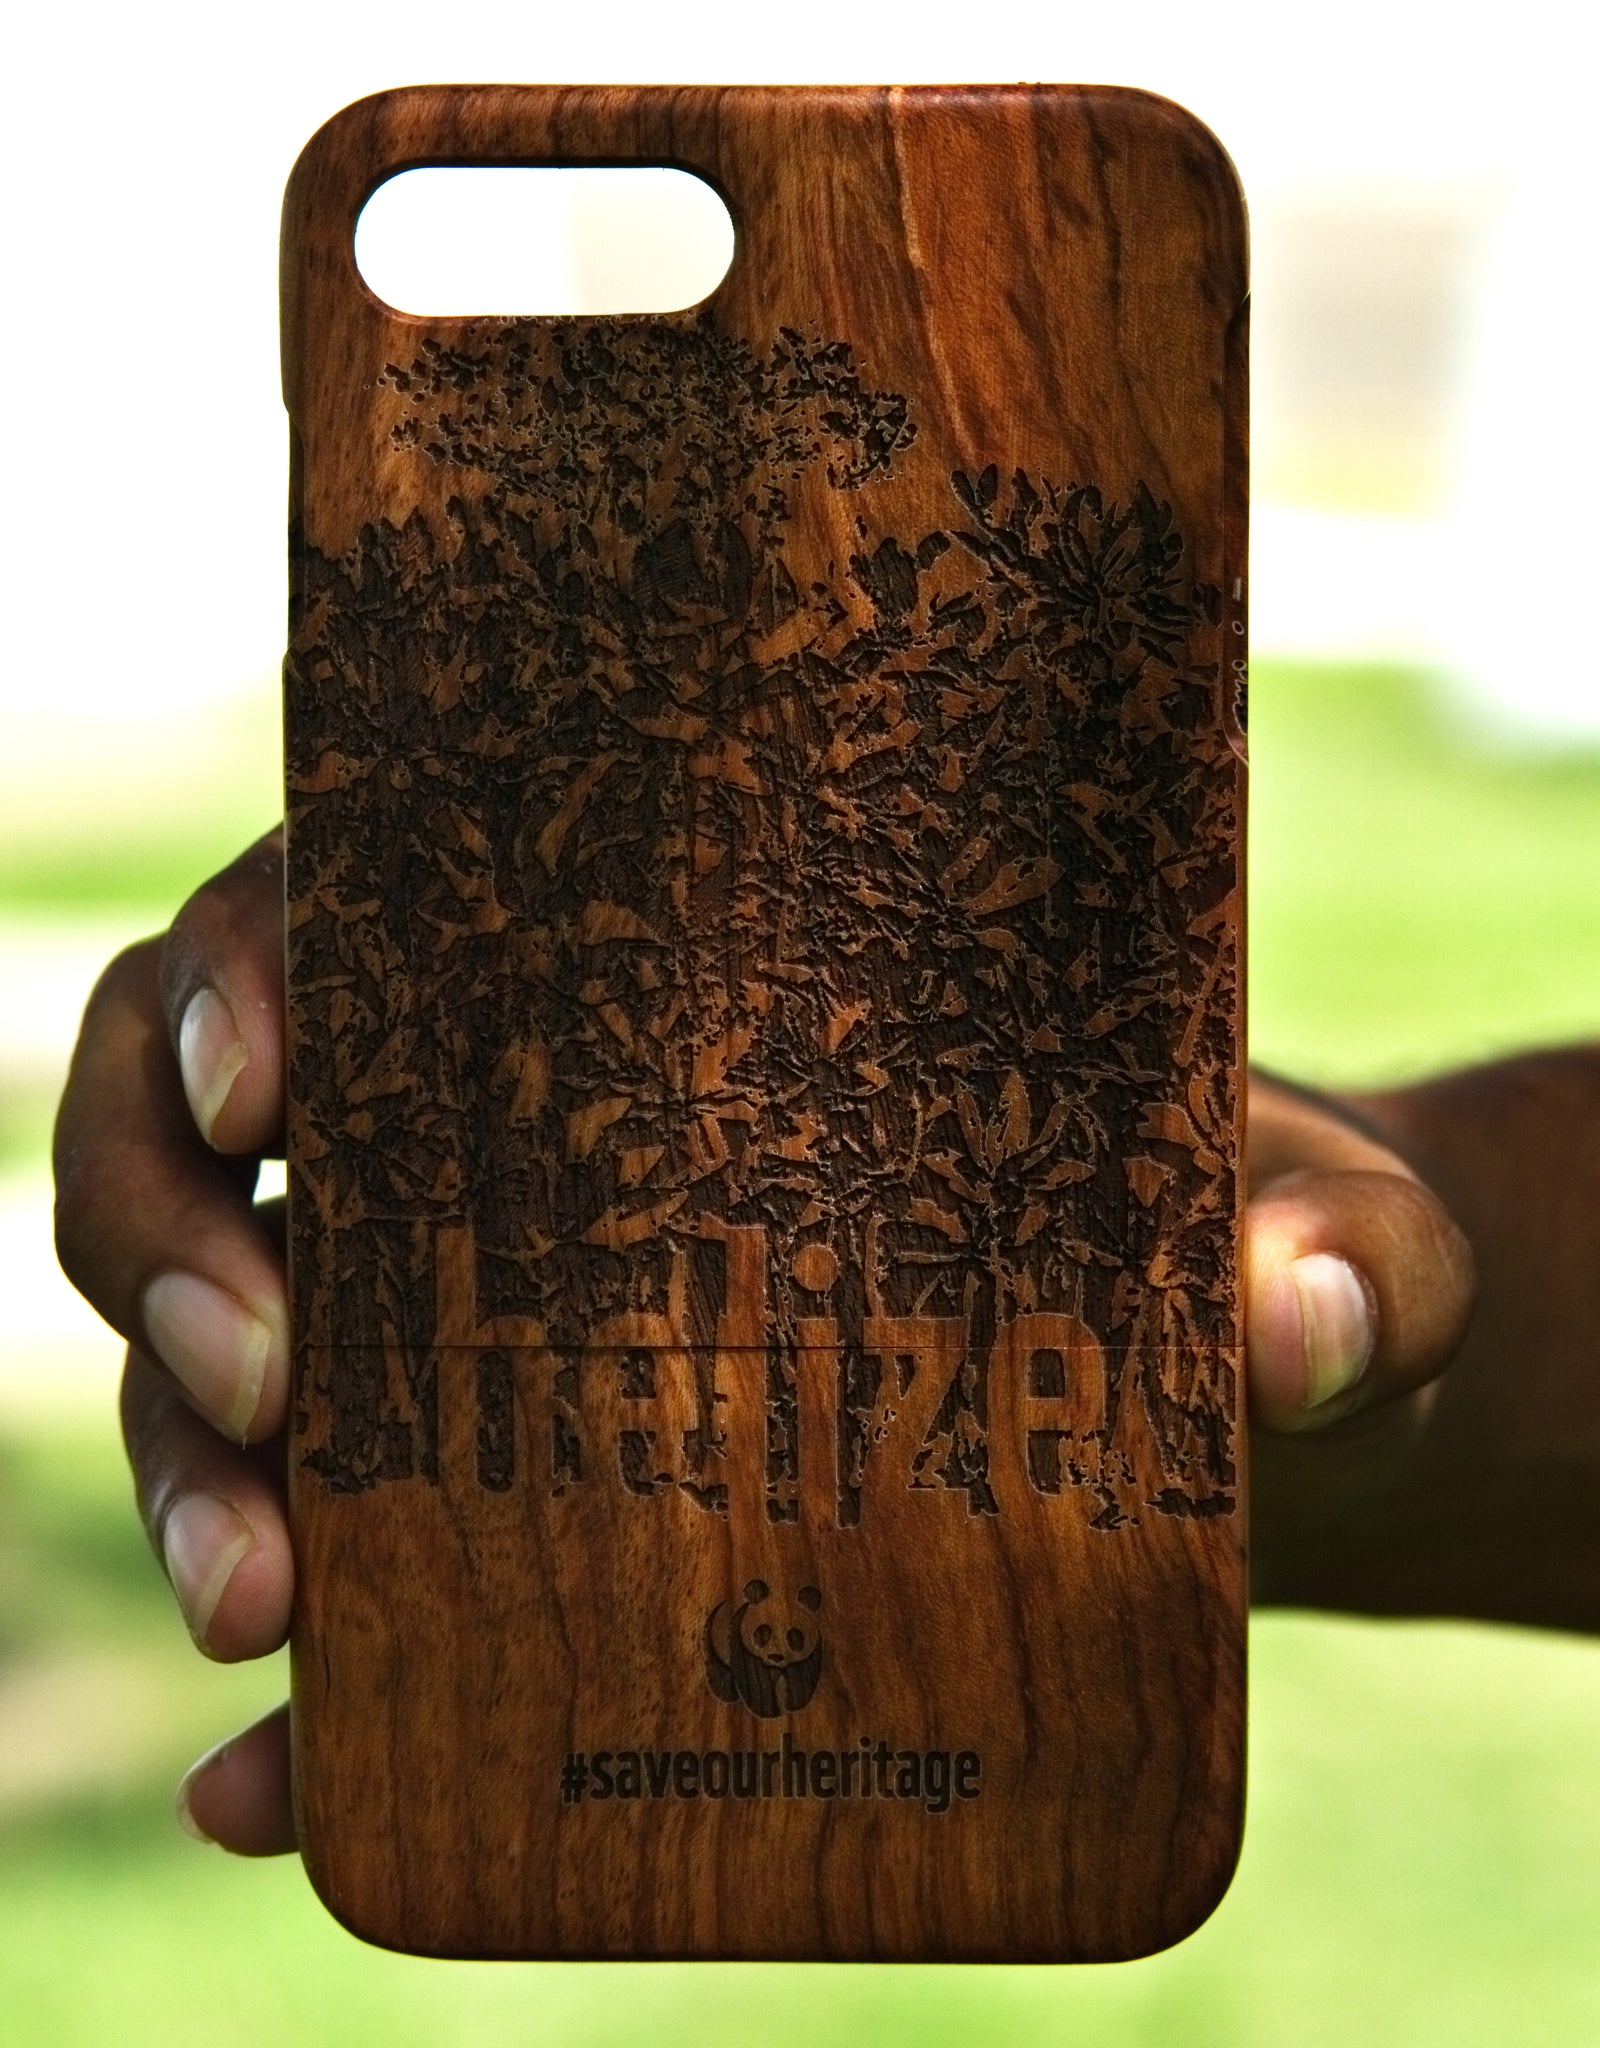 IPhone 7+/8+ (WWF Belize Saving our Shared Heritage design)